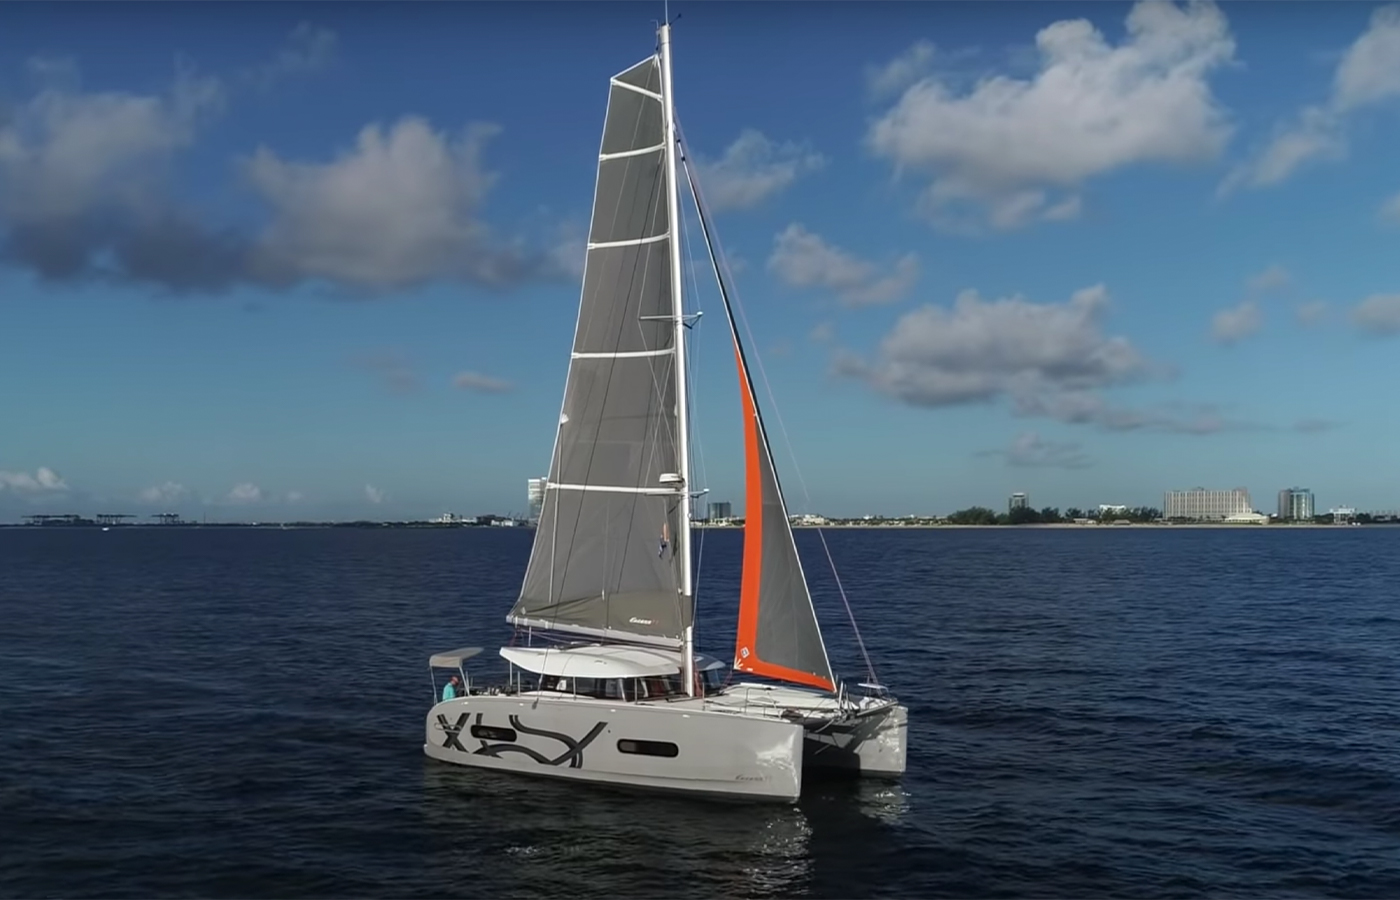 Excess 11 Catamaran Highlight [Boat Review + Video]